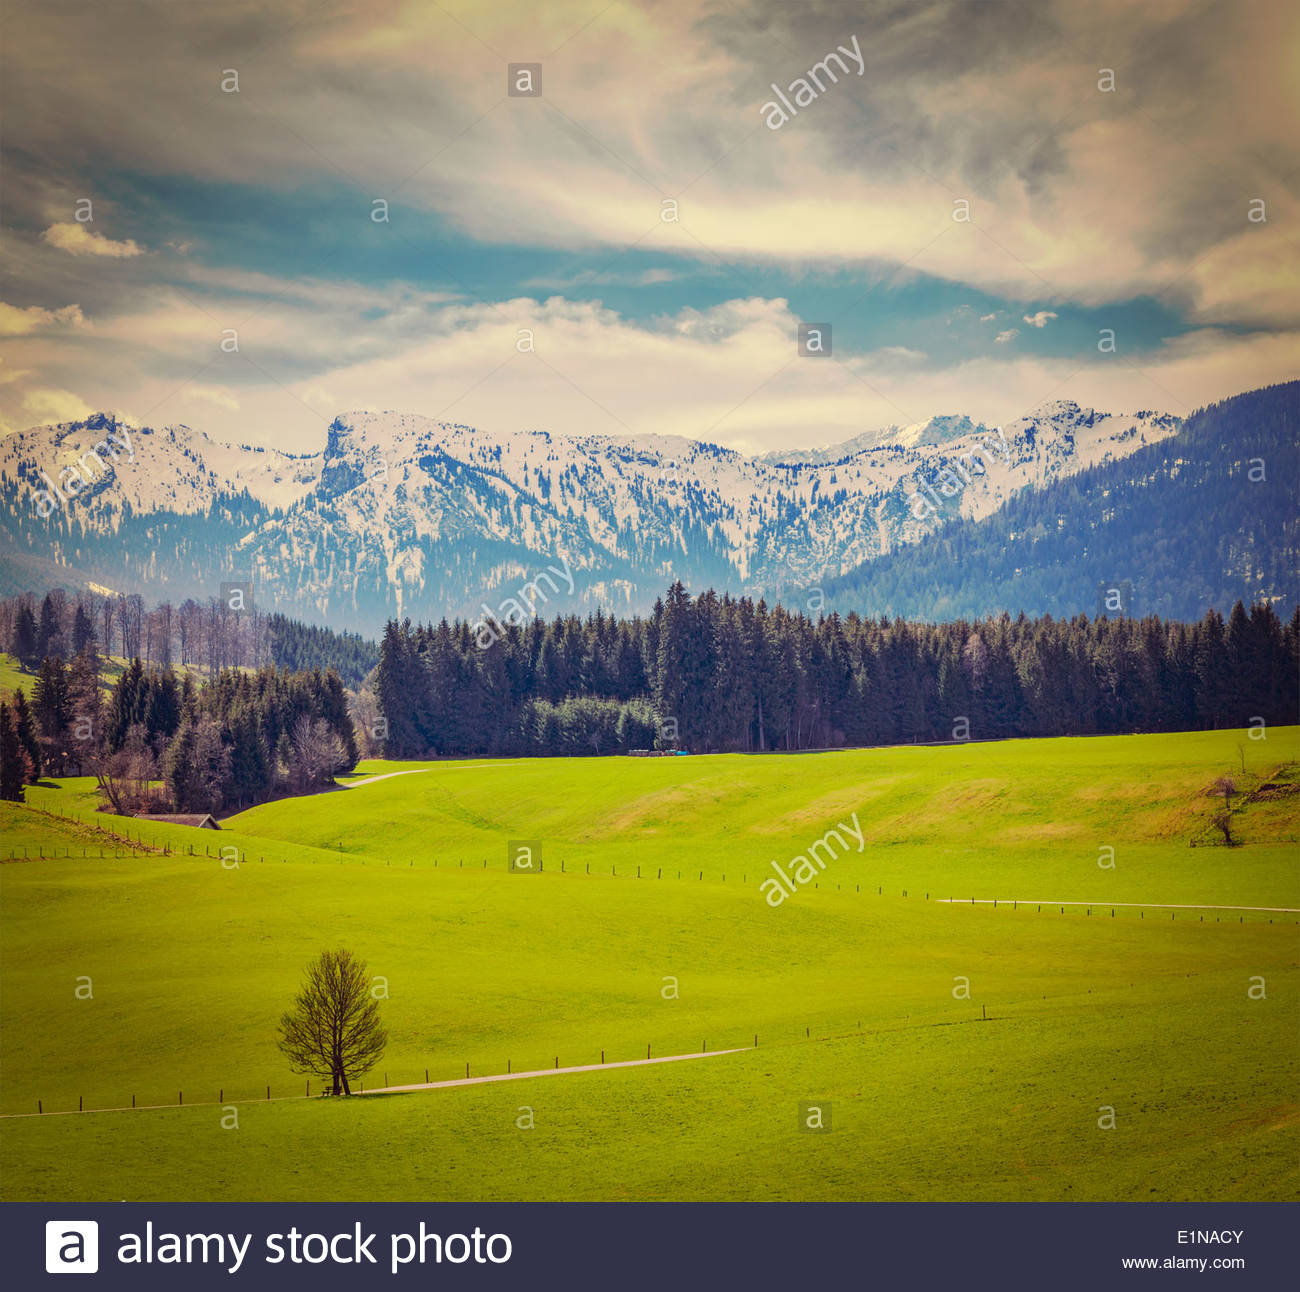 German idyllic pastoral countryside in spring with Alps in 1300x1292